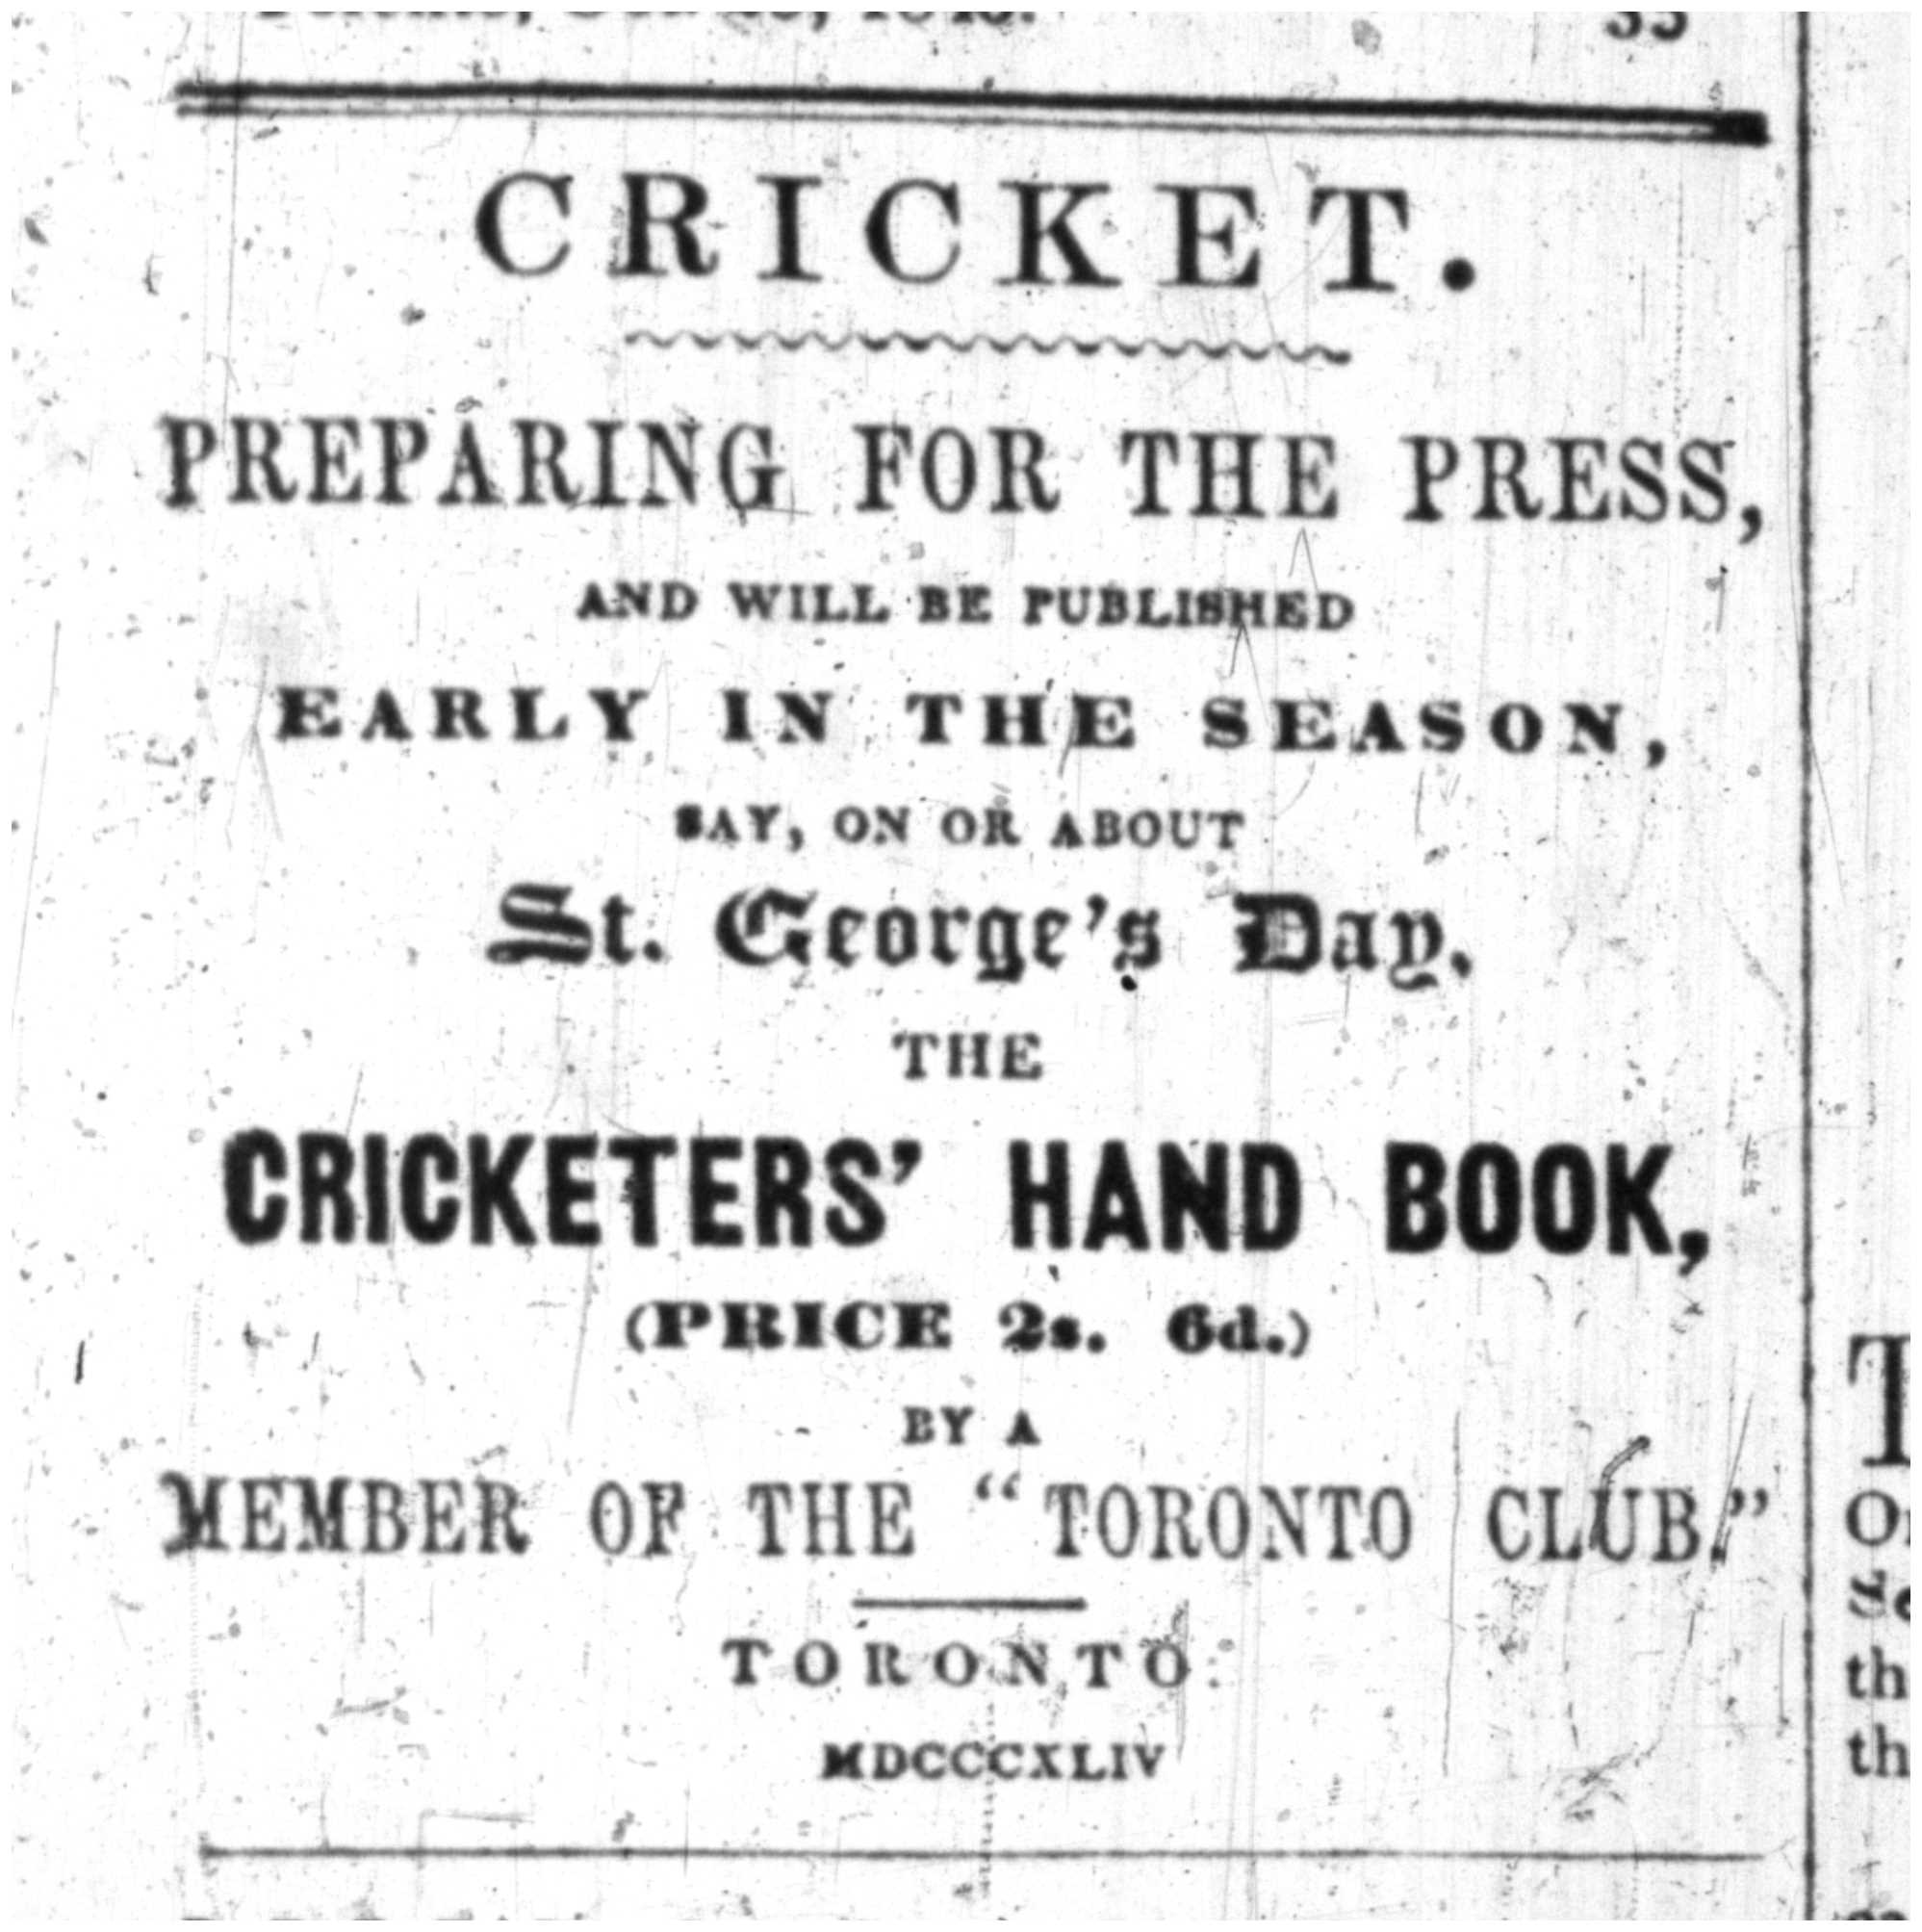 Advertisement for The Cricketers' Hand Book.  This appeared in the Toronto Herald, which was edited by George A. Barber himself.  Toronto Herald, April 8, 1844.